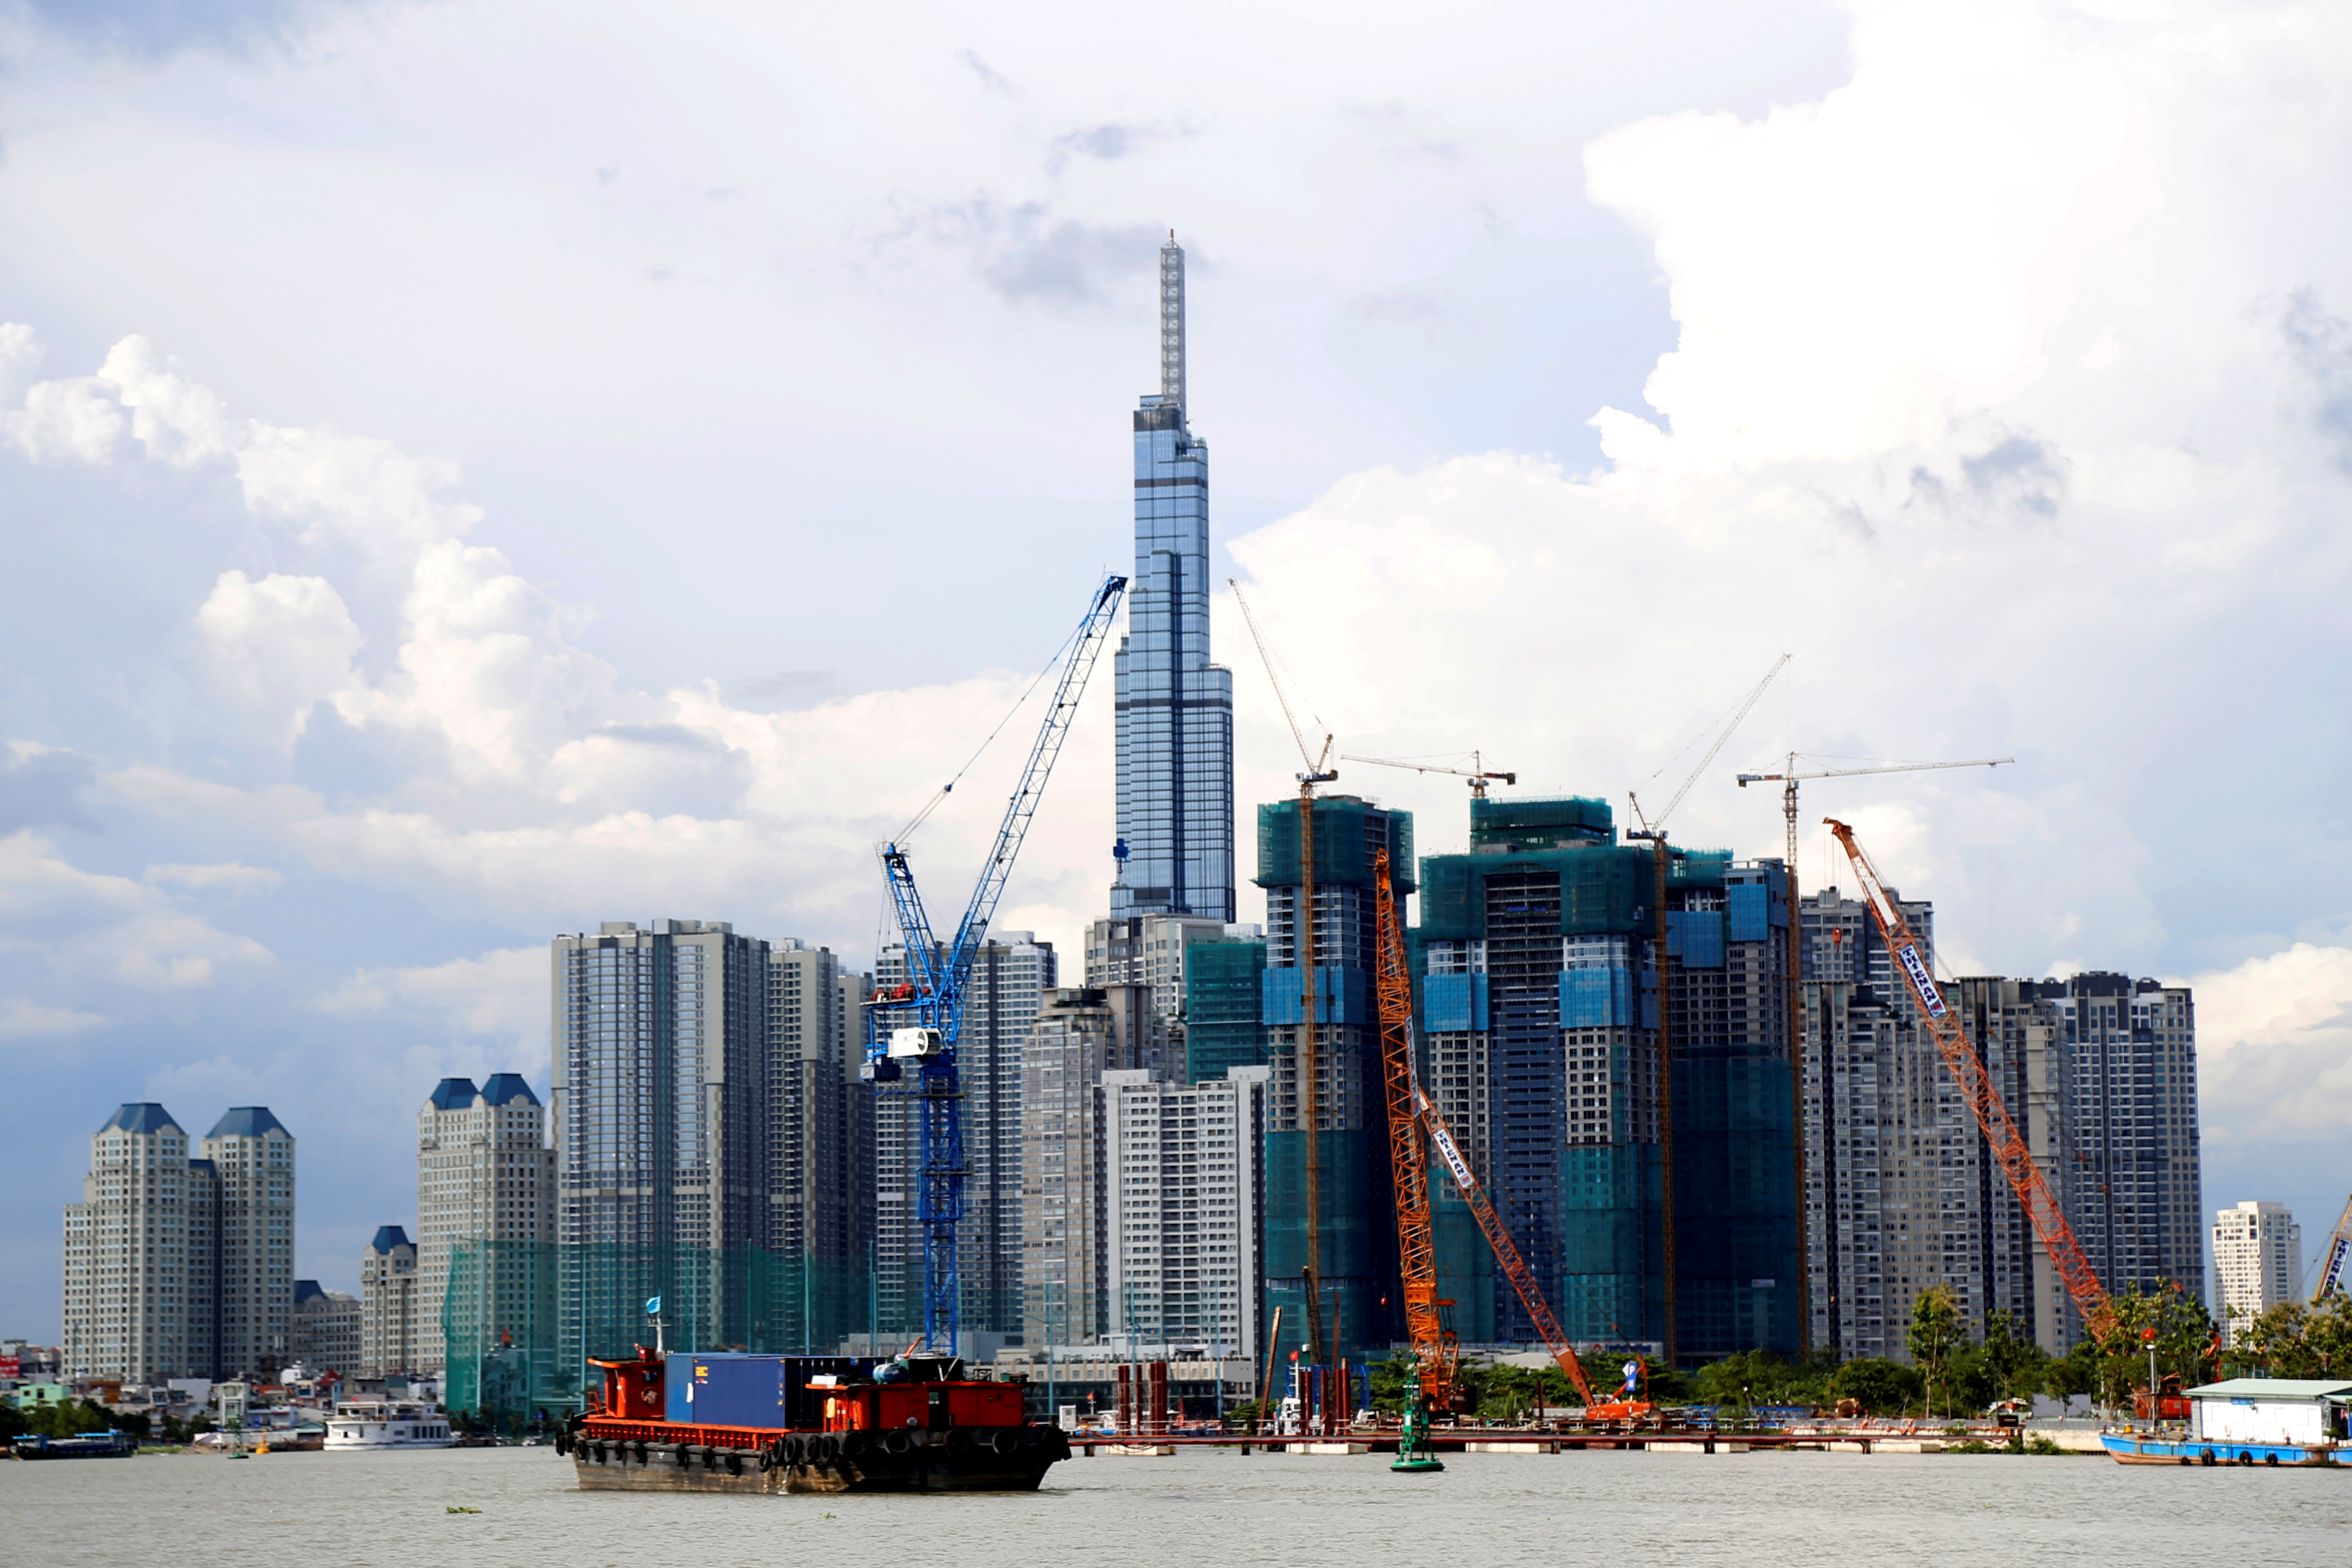 Vinhomes Central Park and Landmark 81, Vietnam's tallest building are seen from the Saigon river in Ho Chi Minh city, Vietnam June 6, 2019. REUTERS/Yen Duong/File Photo